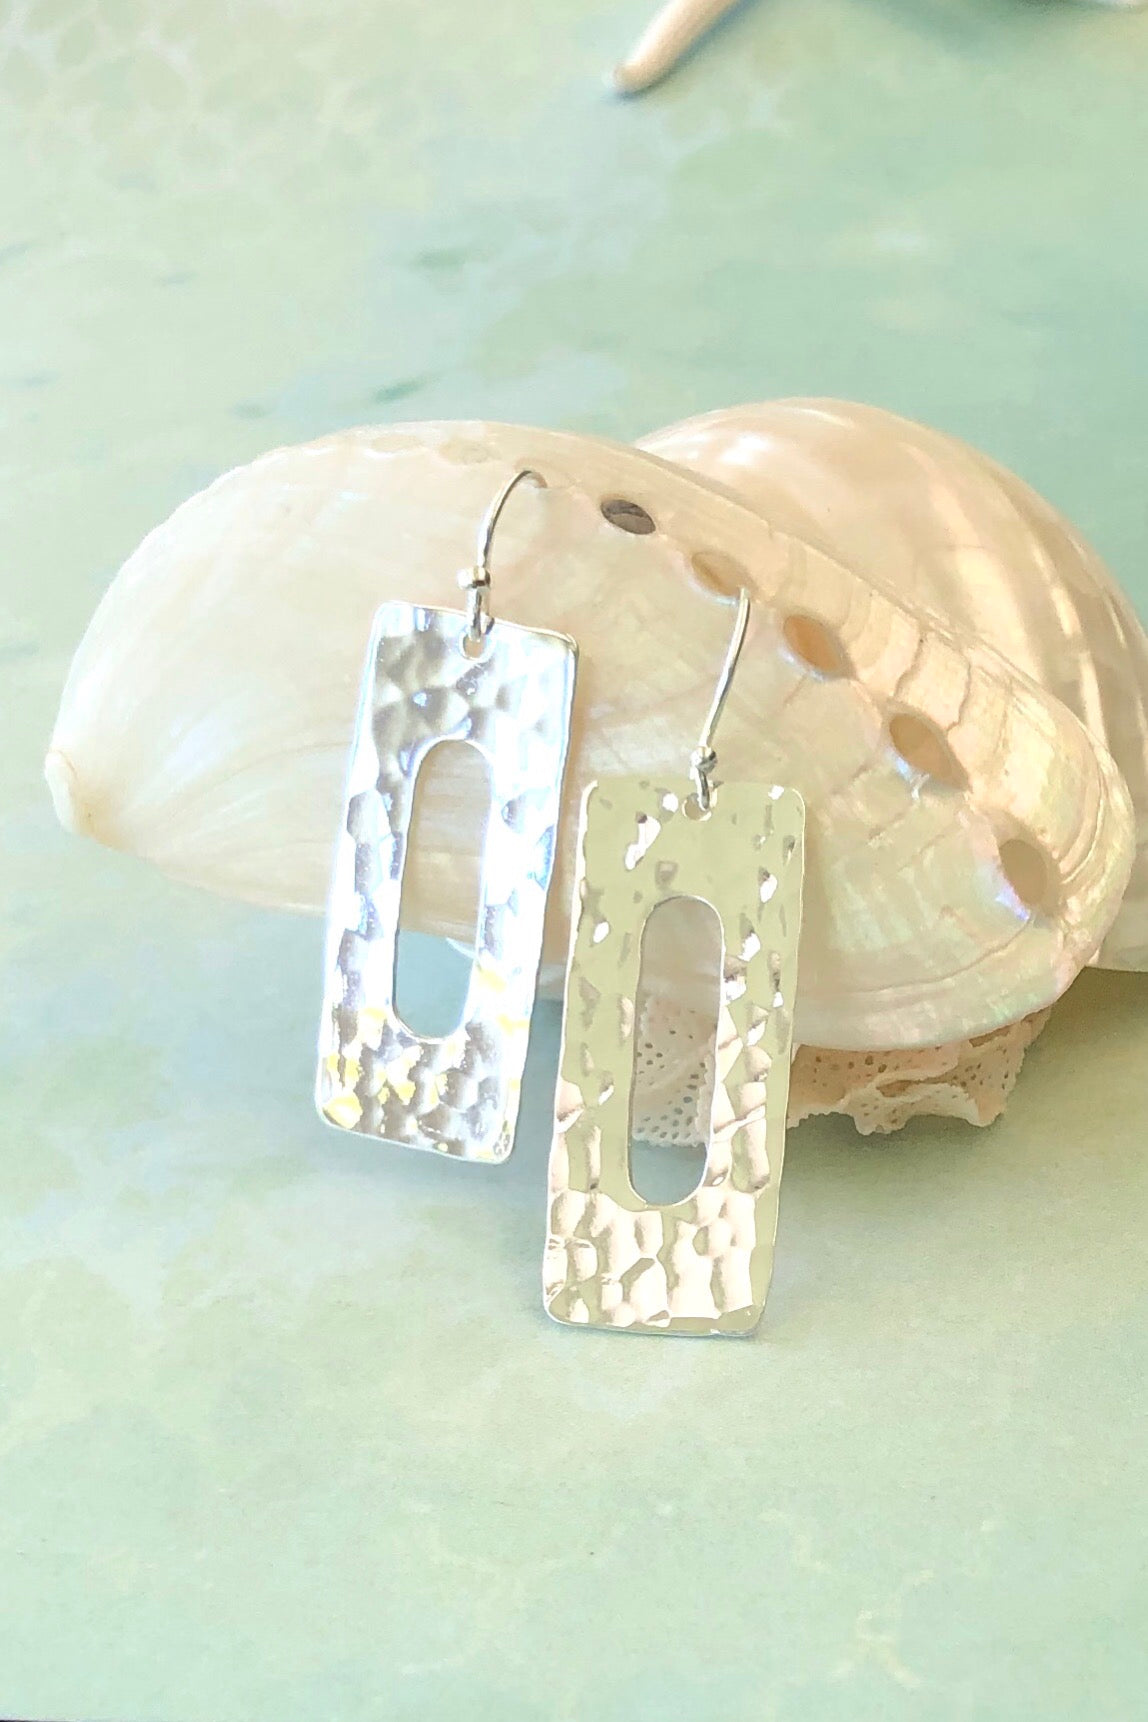 bohemian style the Earrings Sala Slice in 925 Silver are perfect for summer